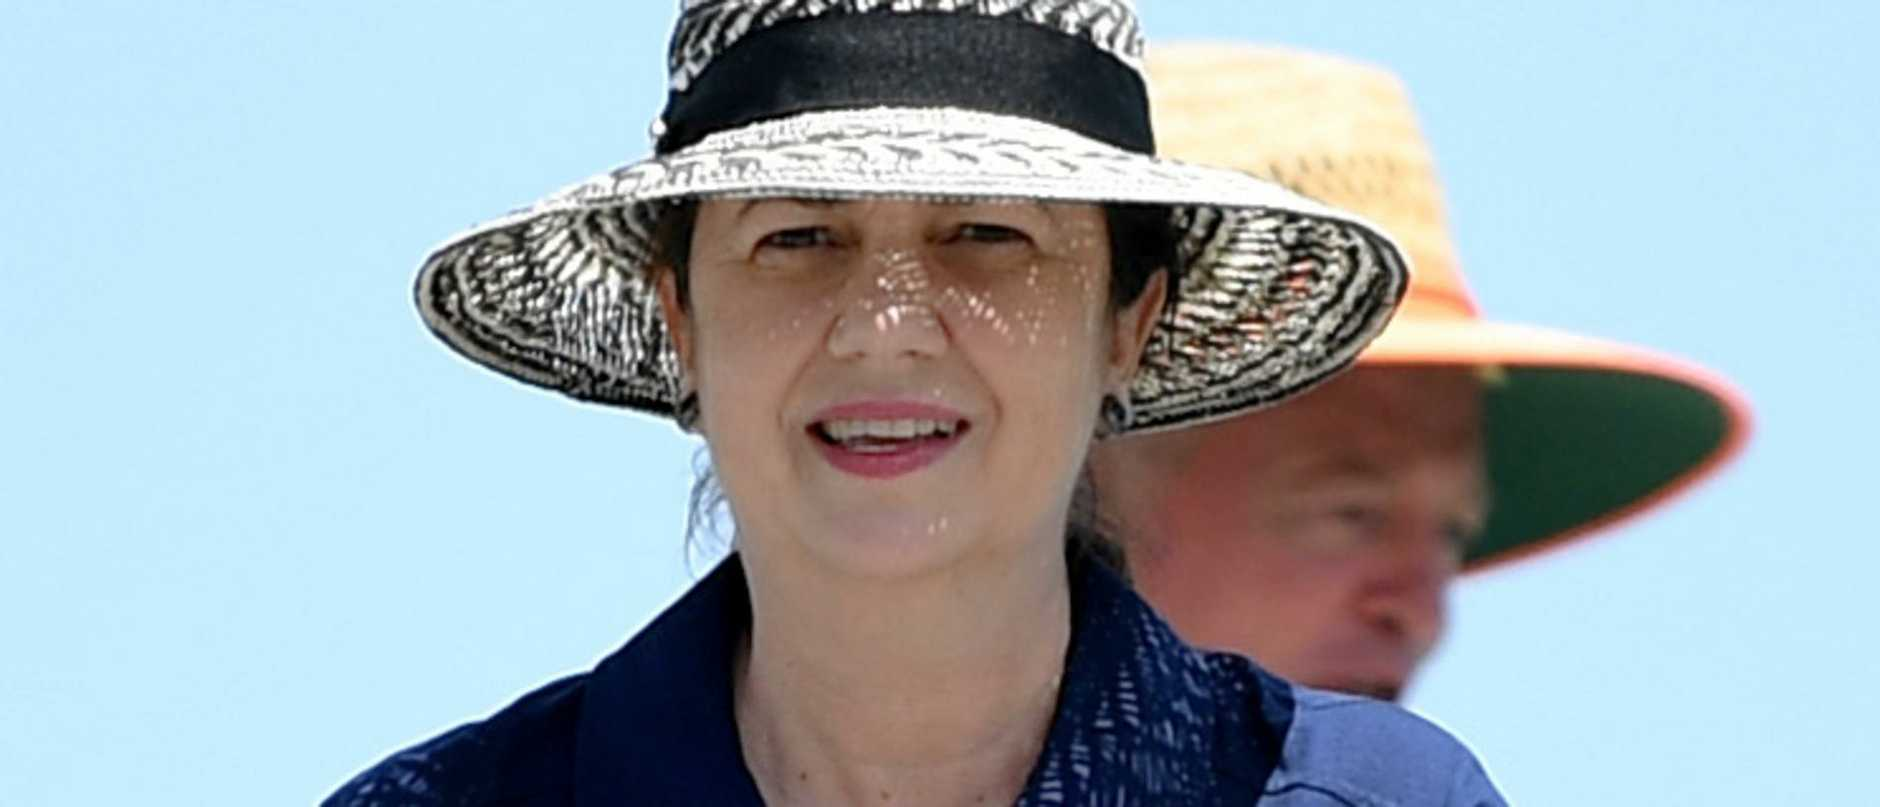 Premier Annastacia Palaszczuk to discuss tourism industry future in Far North visit